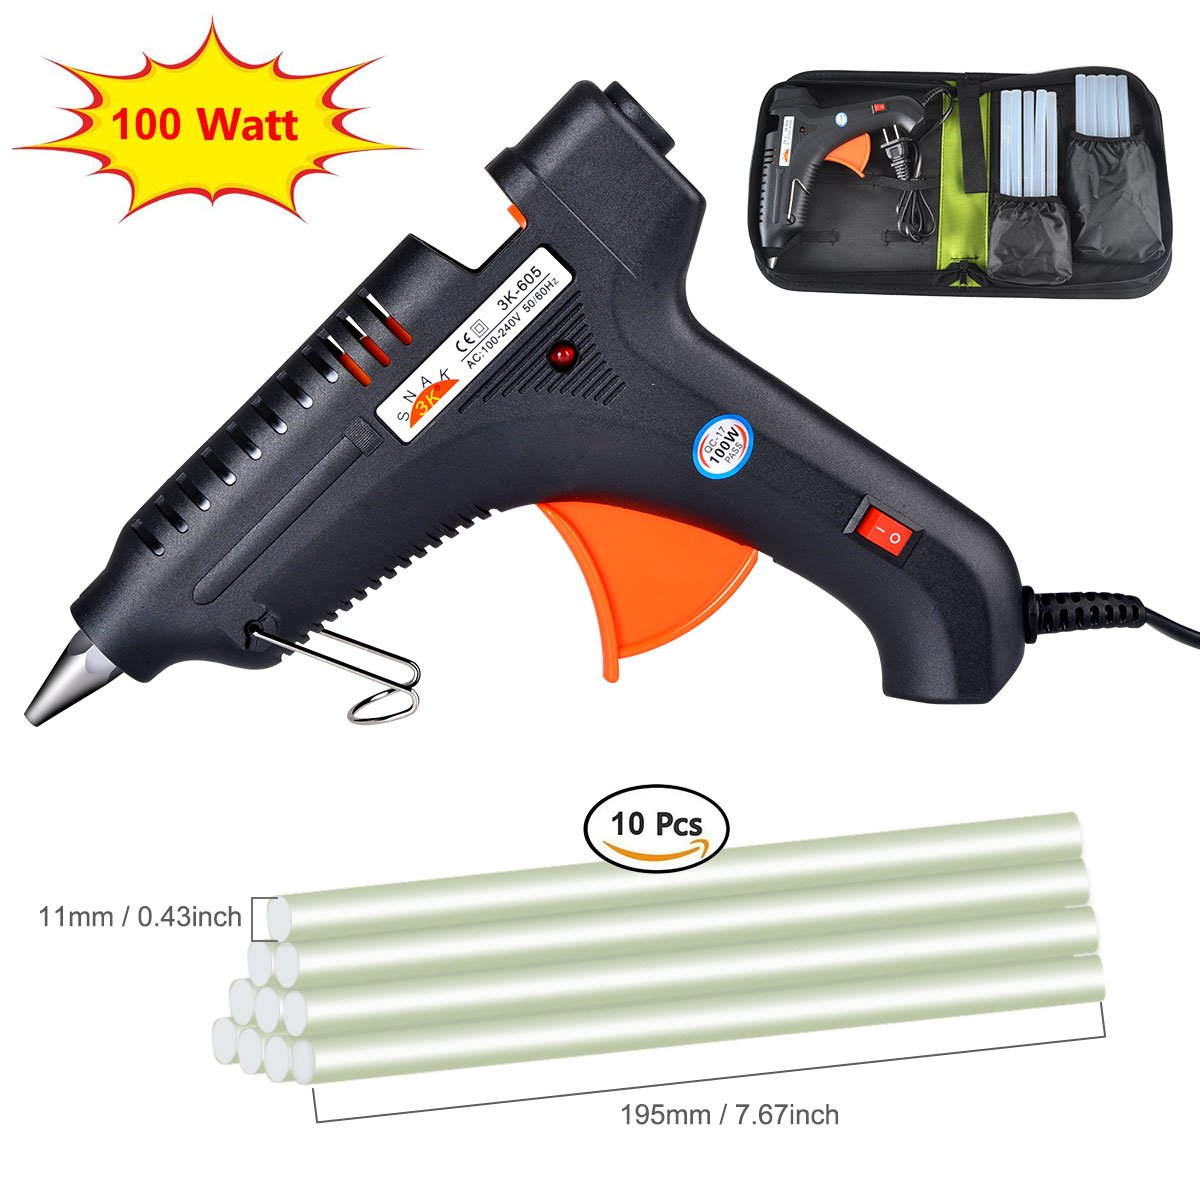 100% Safe Hot Melt Glue Gun with Rapid Heating Technology Flexible Trigger for DIY Small Arts Craft Projects Household& Sealing and Quick Repairs(10pcs Glue Sticks & Carry Case) 100W